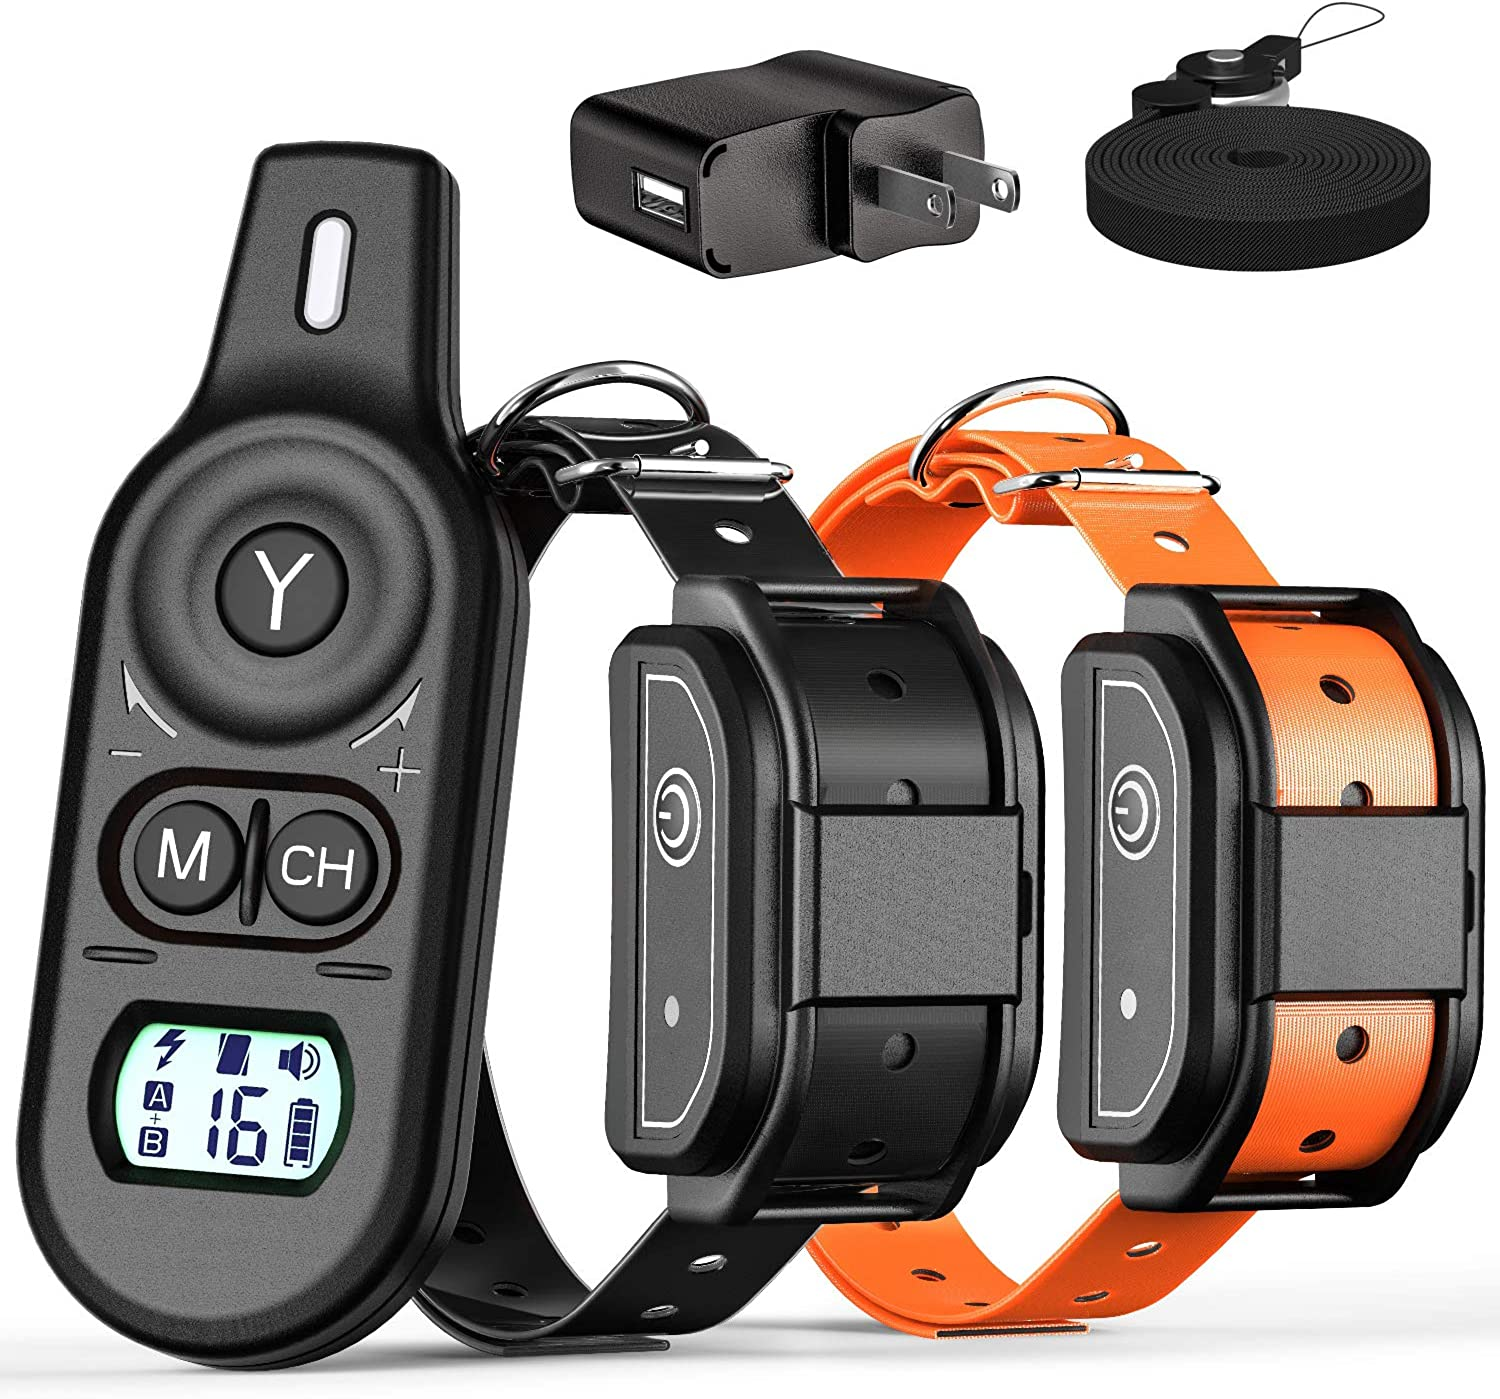 Fcolor Dog Training Collar, 2019 Updated 3 Channels Shock Collar for Dogs with 2600ft Remote, Beep Vibration Shock 3 Modes Fully Waterproof Dog Shock Collar for Small Medium Large Dogs